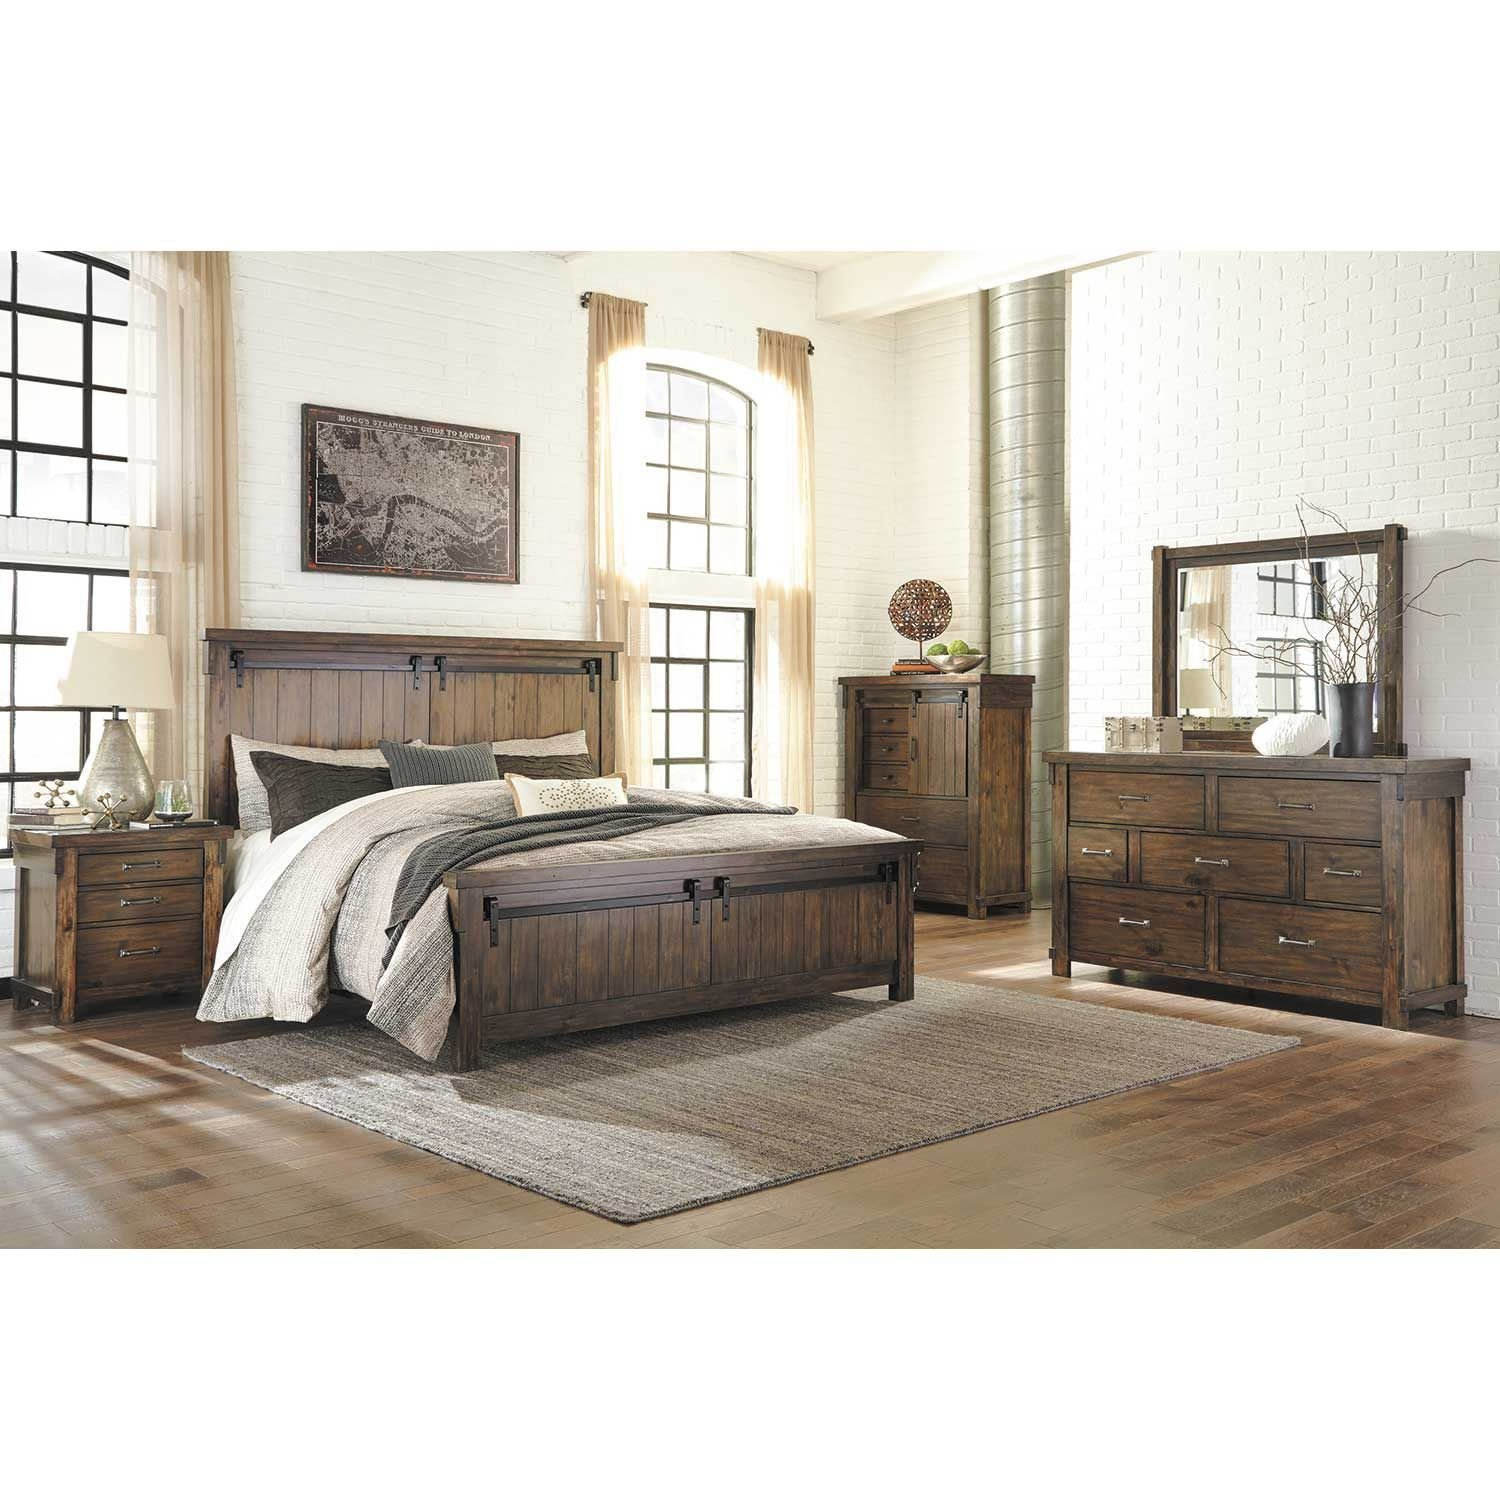 Ashley Outlet Furniture: Lakeleigh 5 Piece Bedroom Set